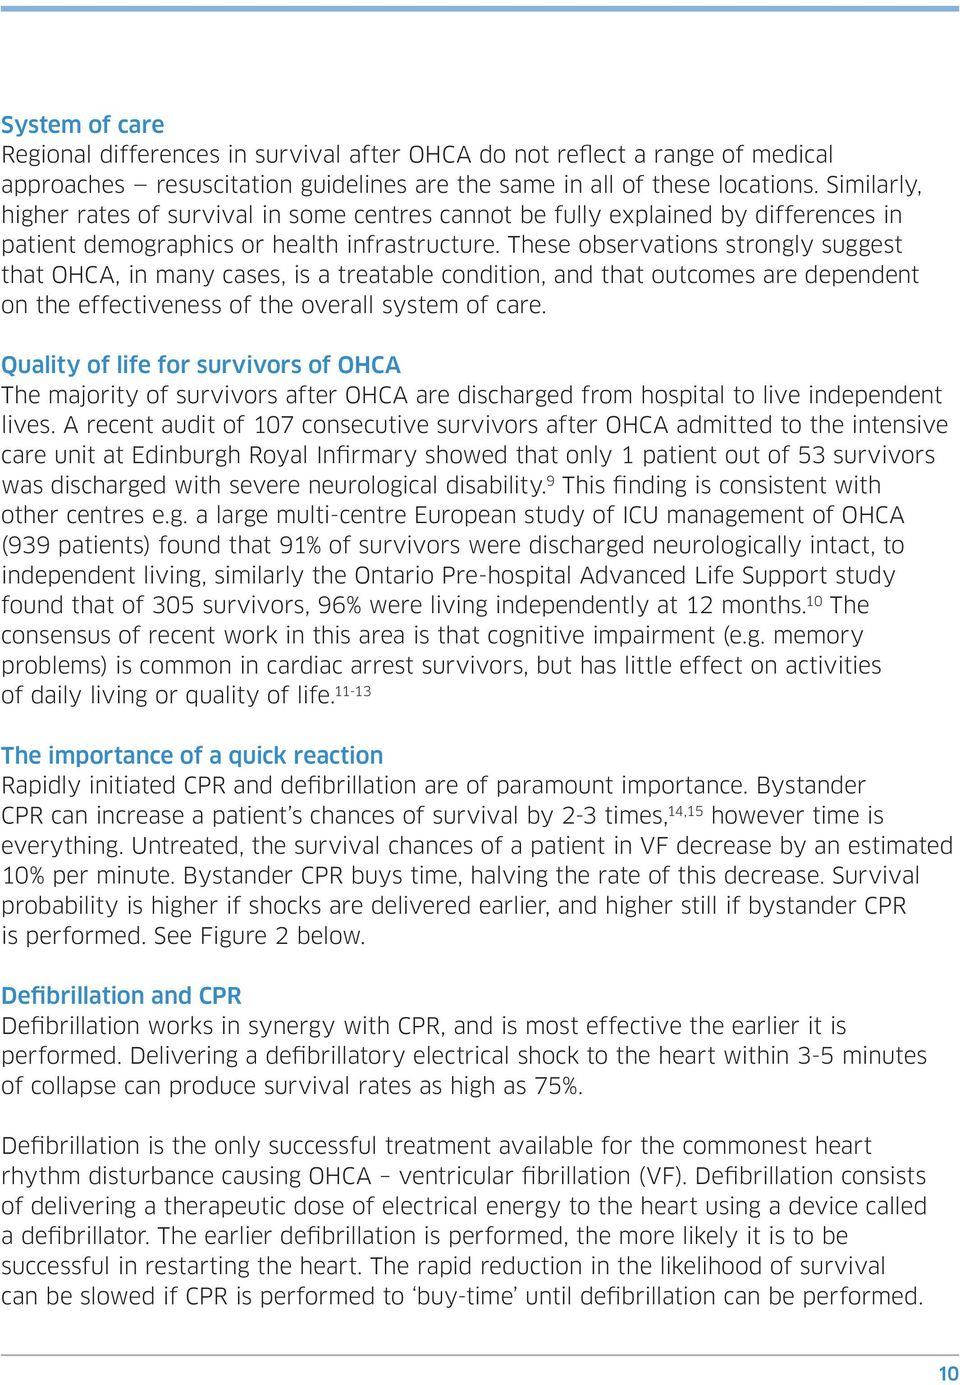 These observations strongly suggest that OHCA, in many cases, is a treatable condition, and that outcomes are dependent on the effectiveness of the overall system of care.